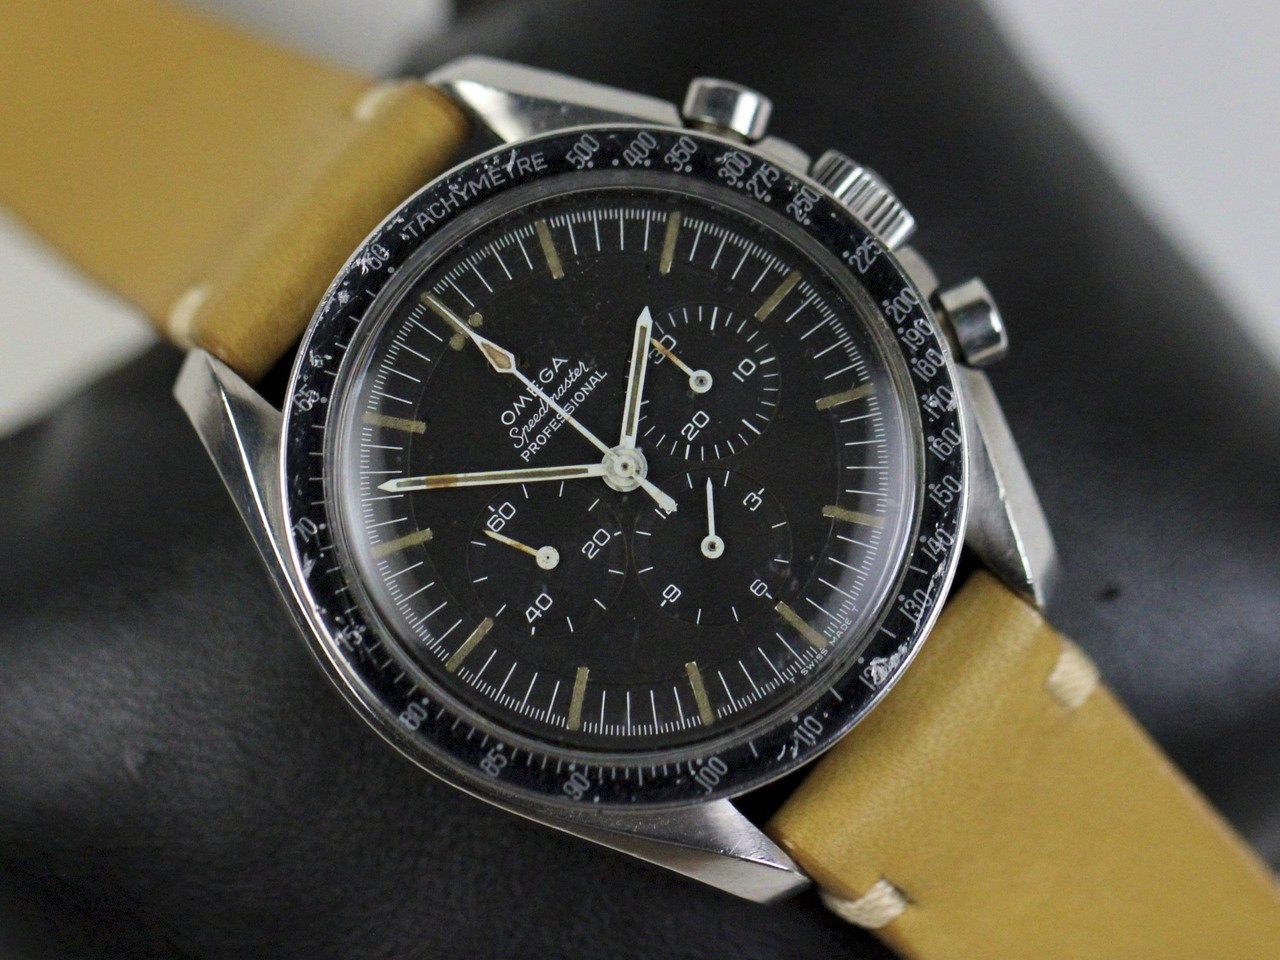 Omega Watch - Vintage 1967 Speedmaster Professional Pre-Moon Cal 321 - www. Legendoftime.com - Chicago Watch Center